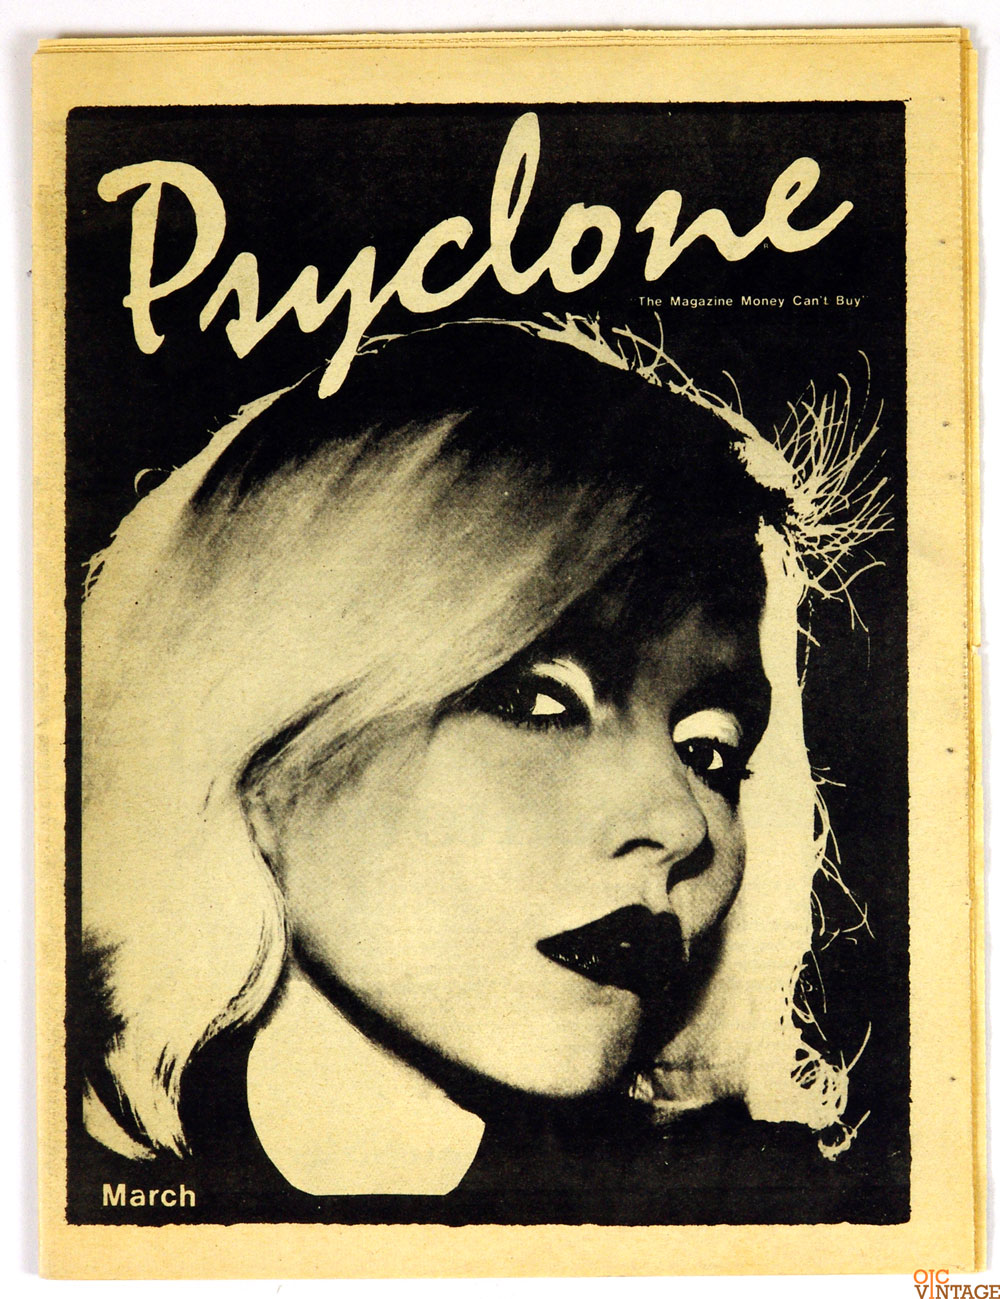 Blondie Cover Psyclone 1977 March Vintage Punk Magazine AOR 5.79